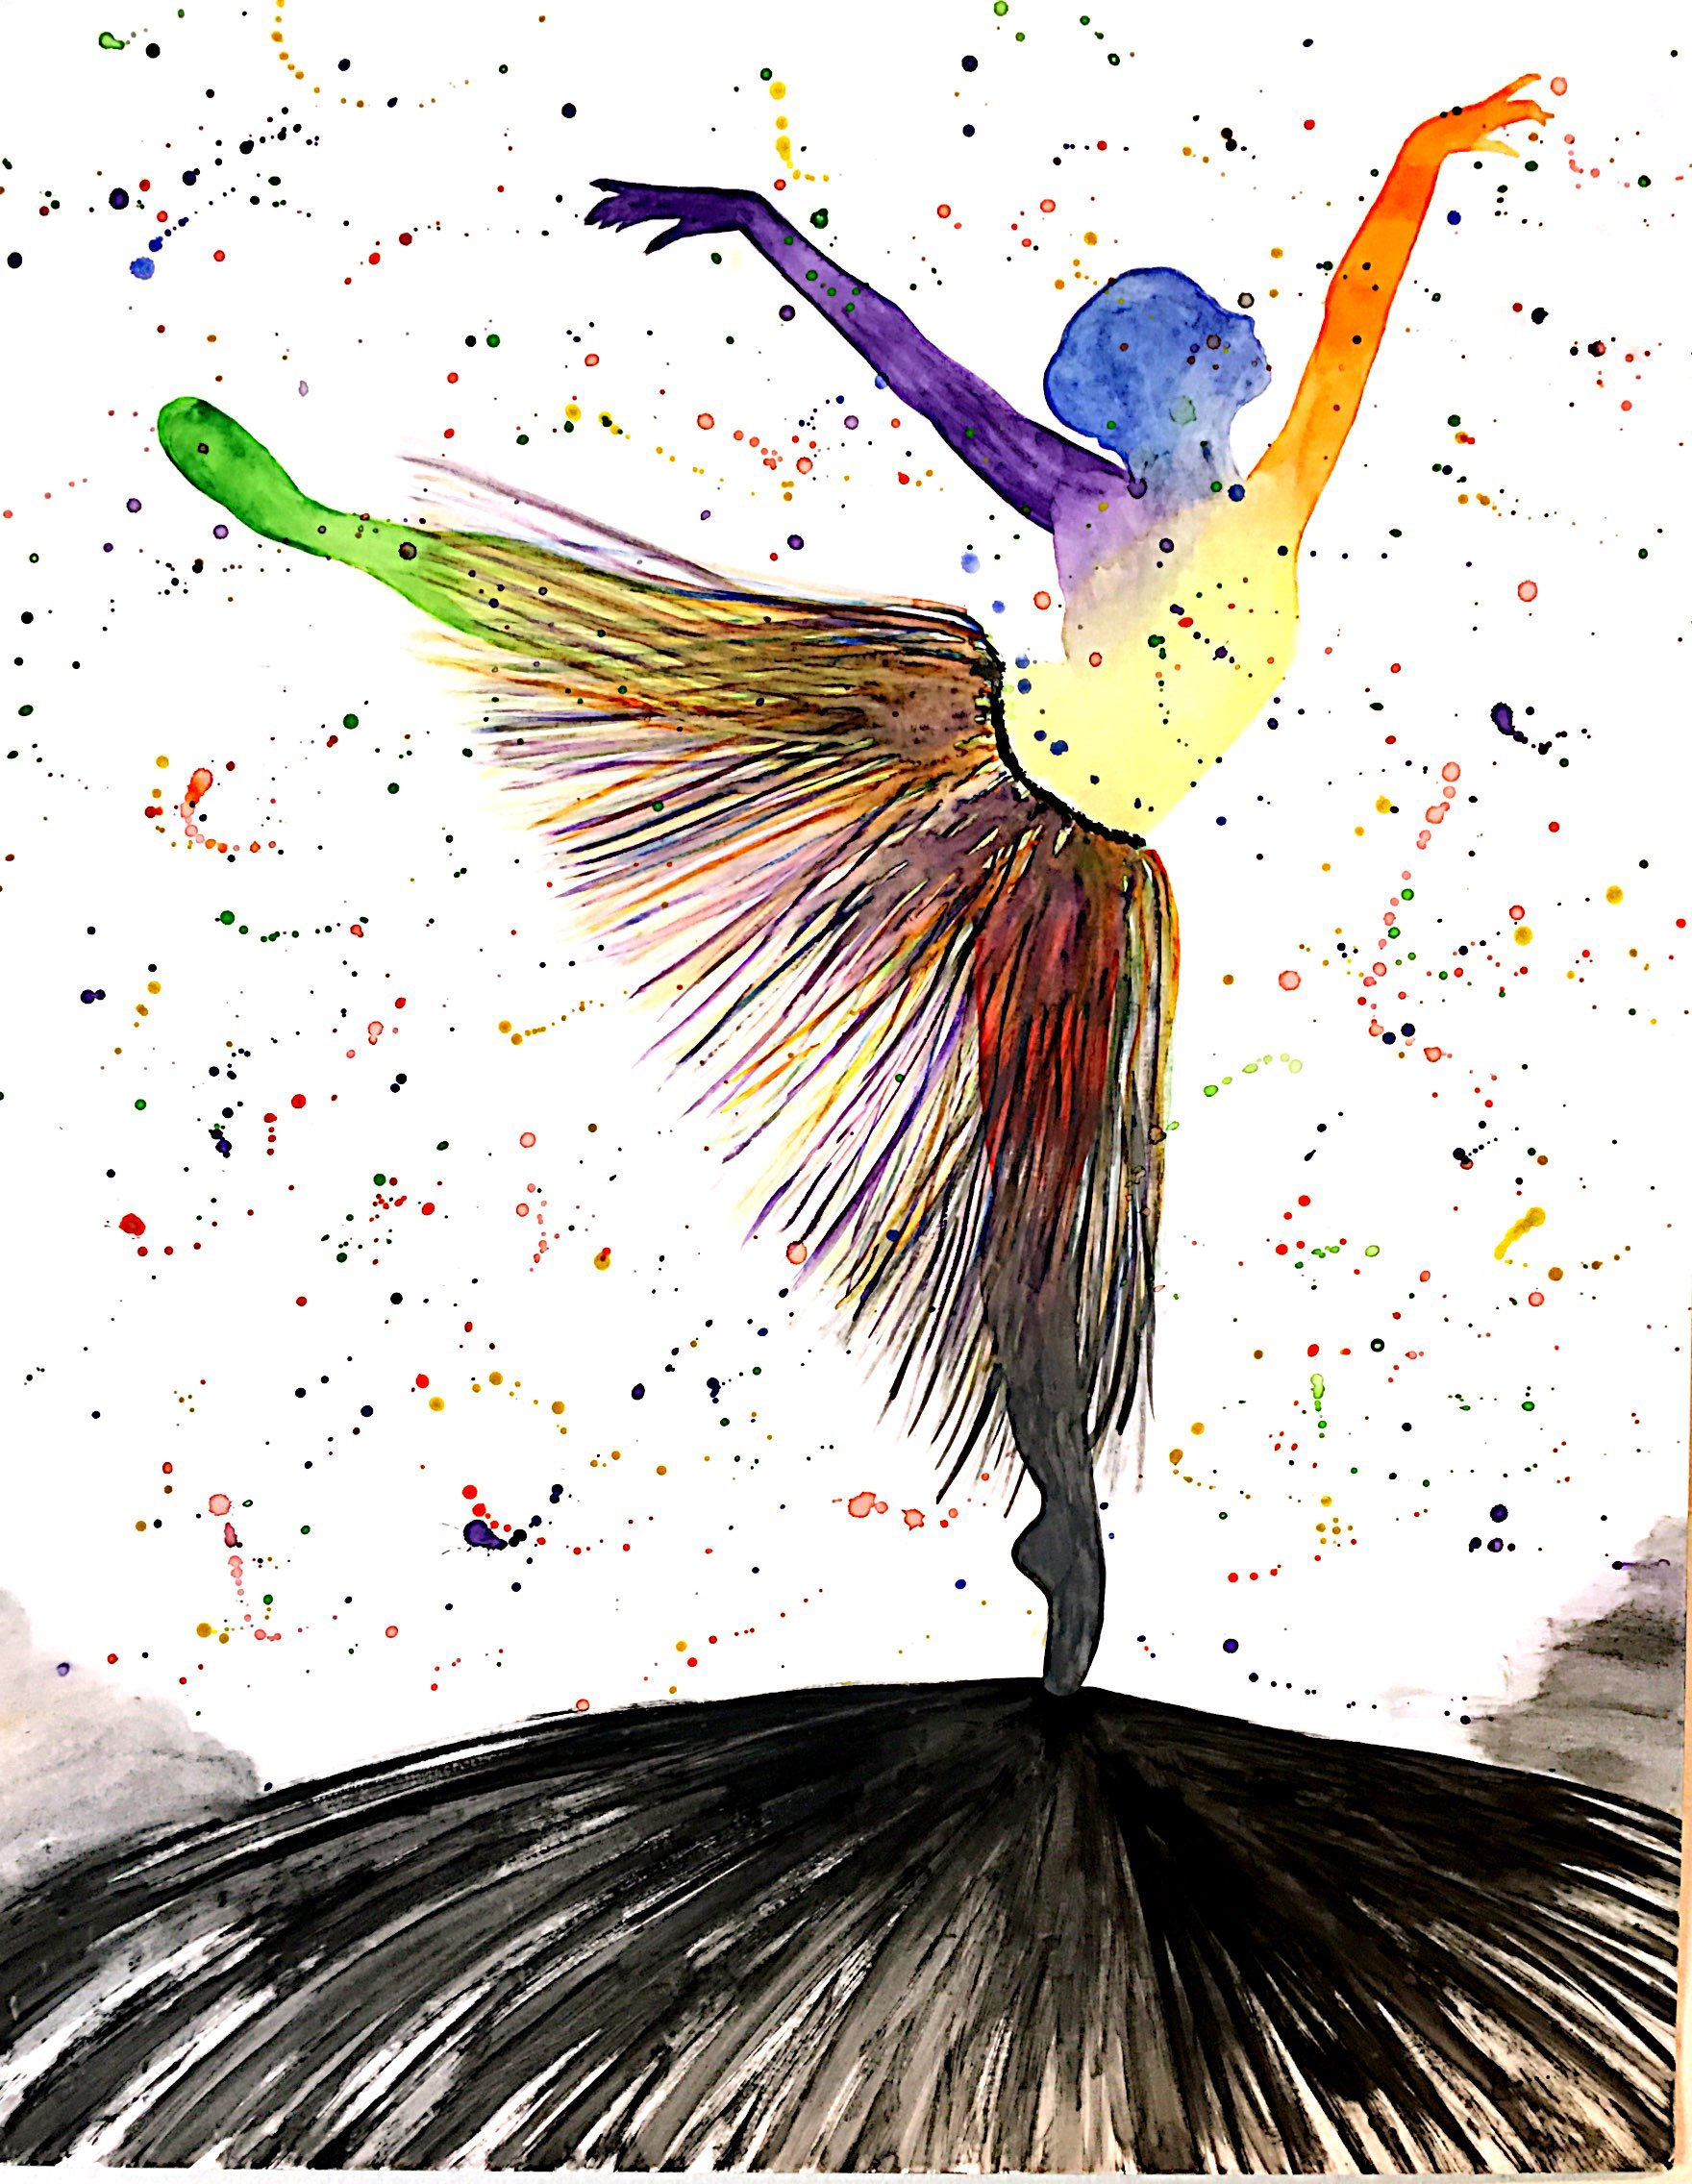 An image of creativity breaking out of the mundane and embracing individuality. Watercolor on paper. 2016.